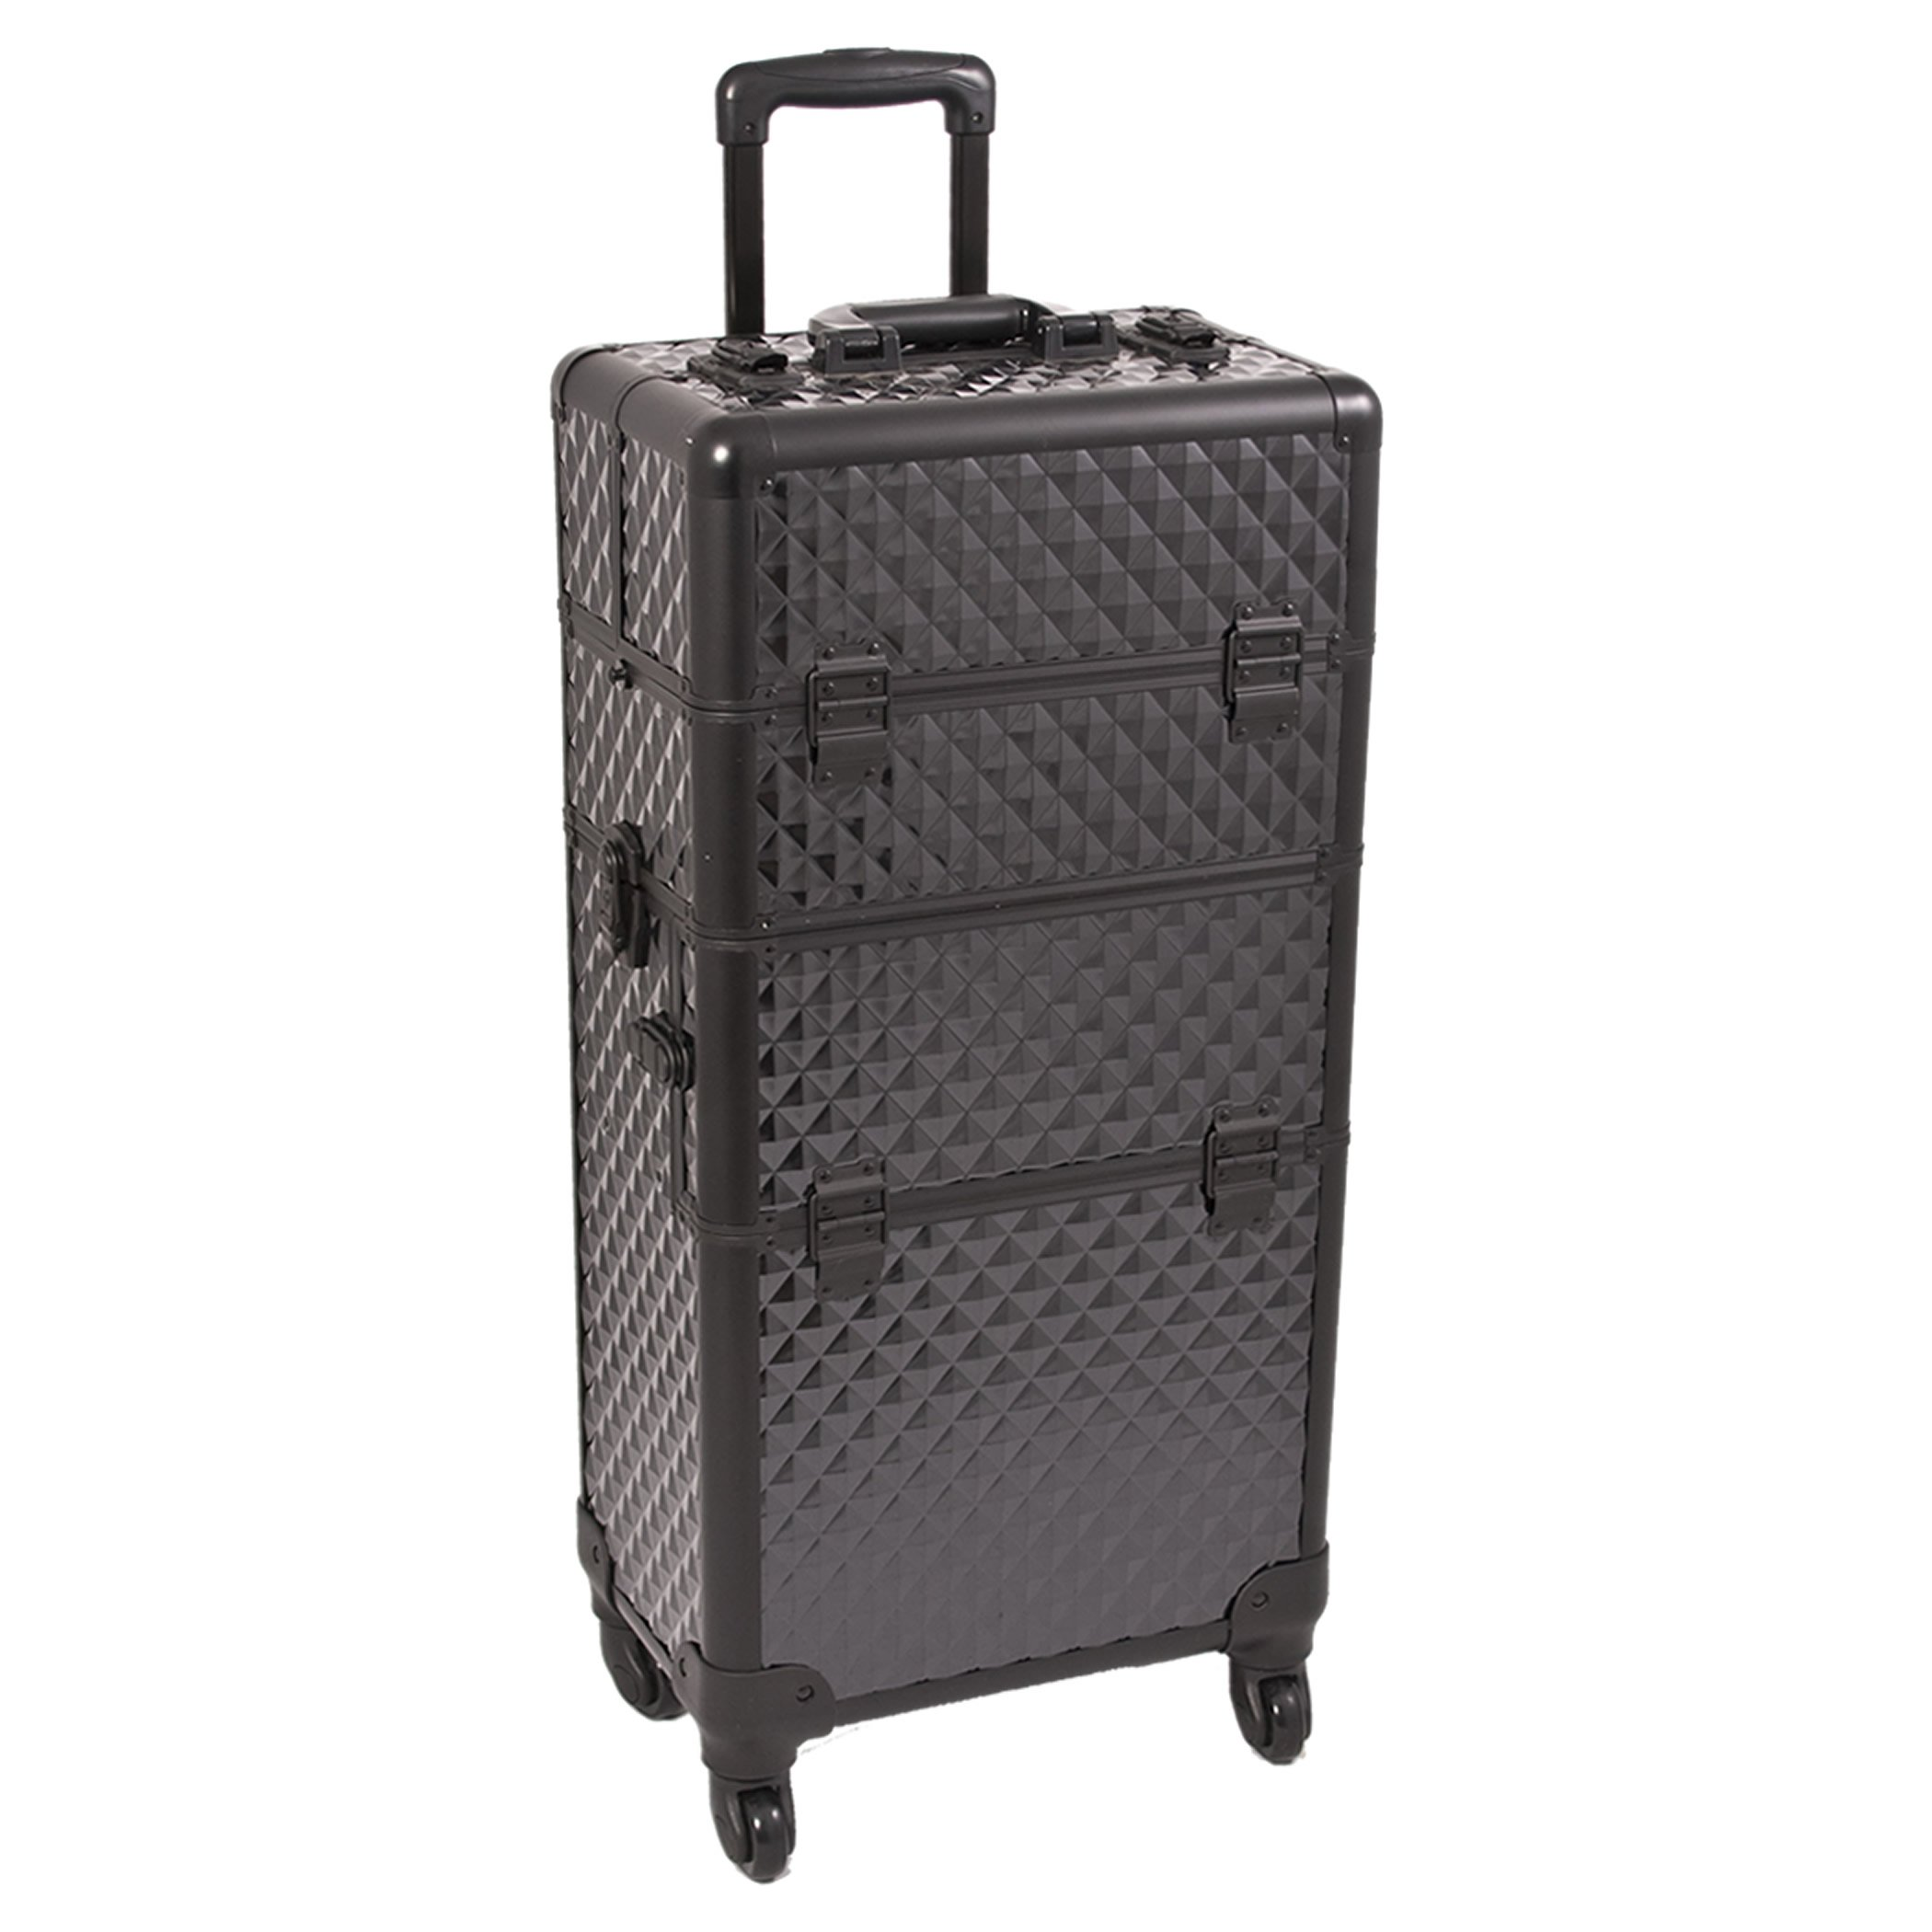 Sunrise Rolling Makeup Train Case 2 in 1 Professional Artist I3661, 8 Trays and 1 Removable Tray, 4 Wheel Spinner, Locking with  Mirror and Shoulder Strap, Black Diamond